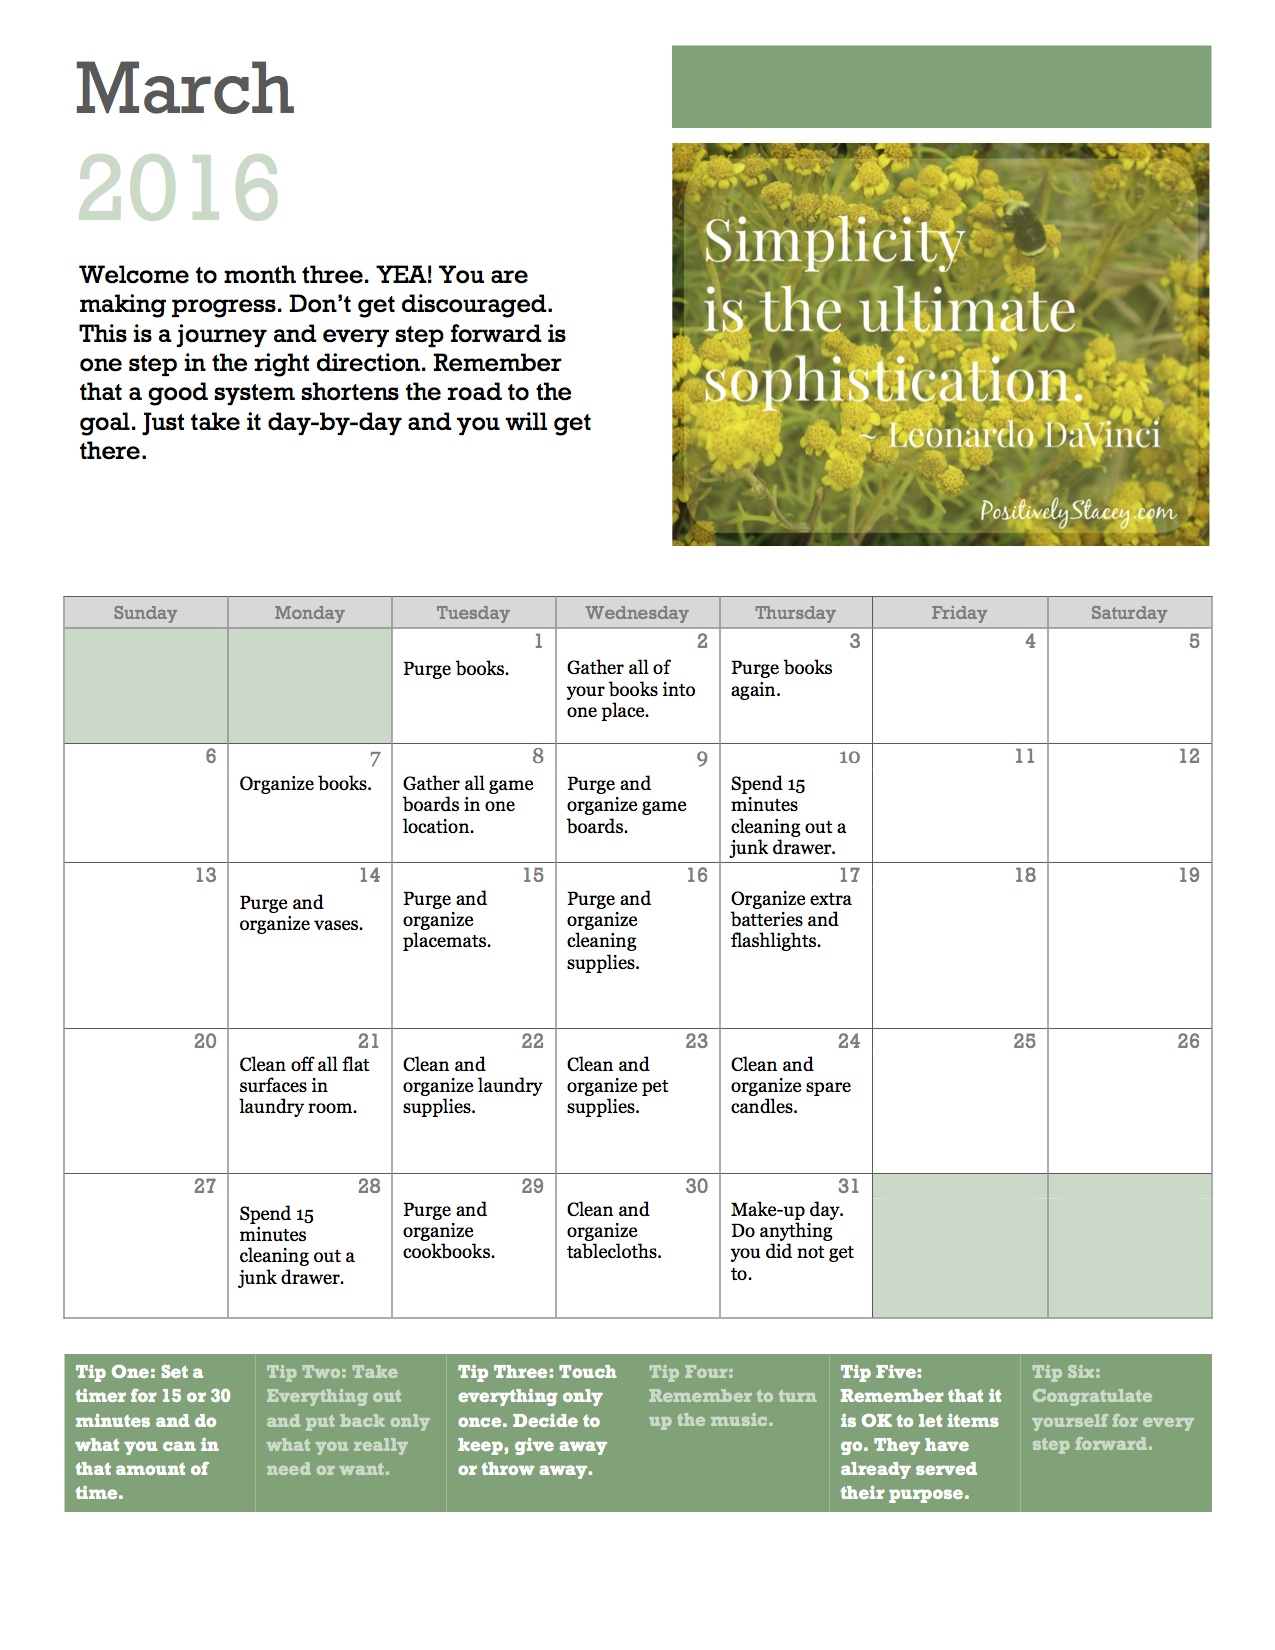 Calendar For Home Organization : Getting organized home organization plan march calendar